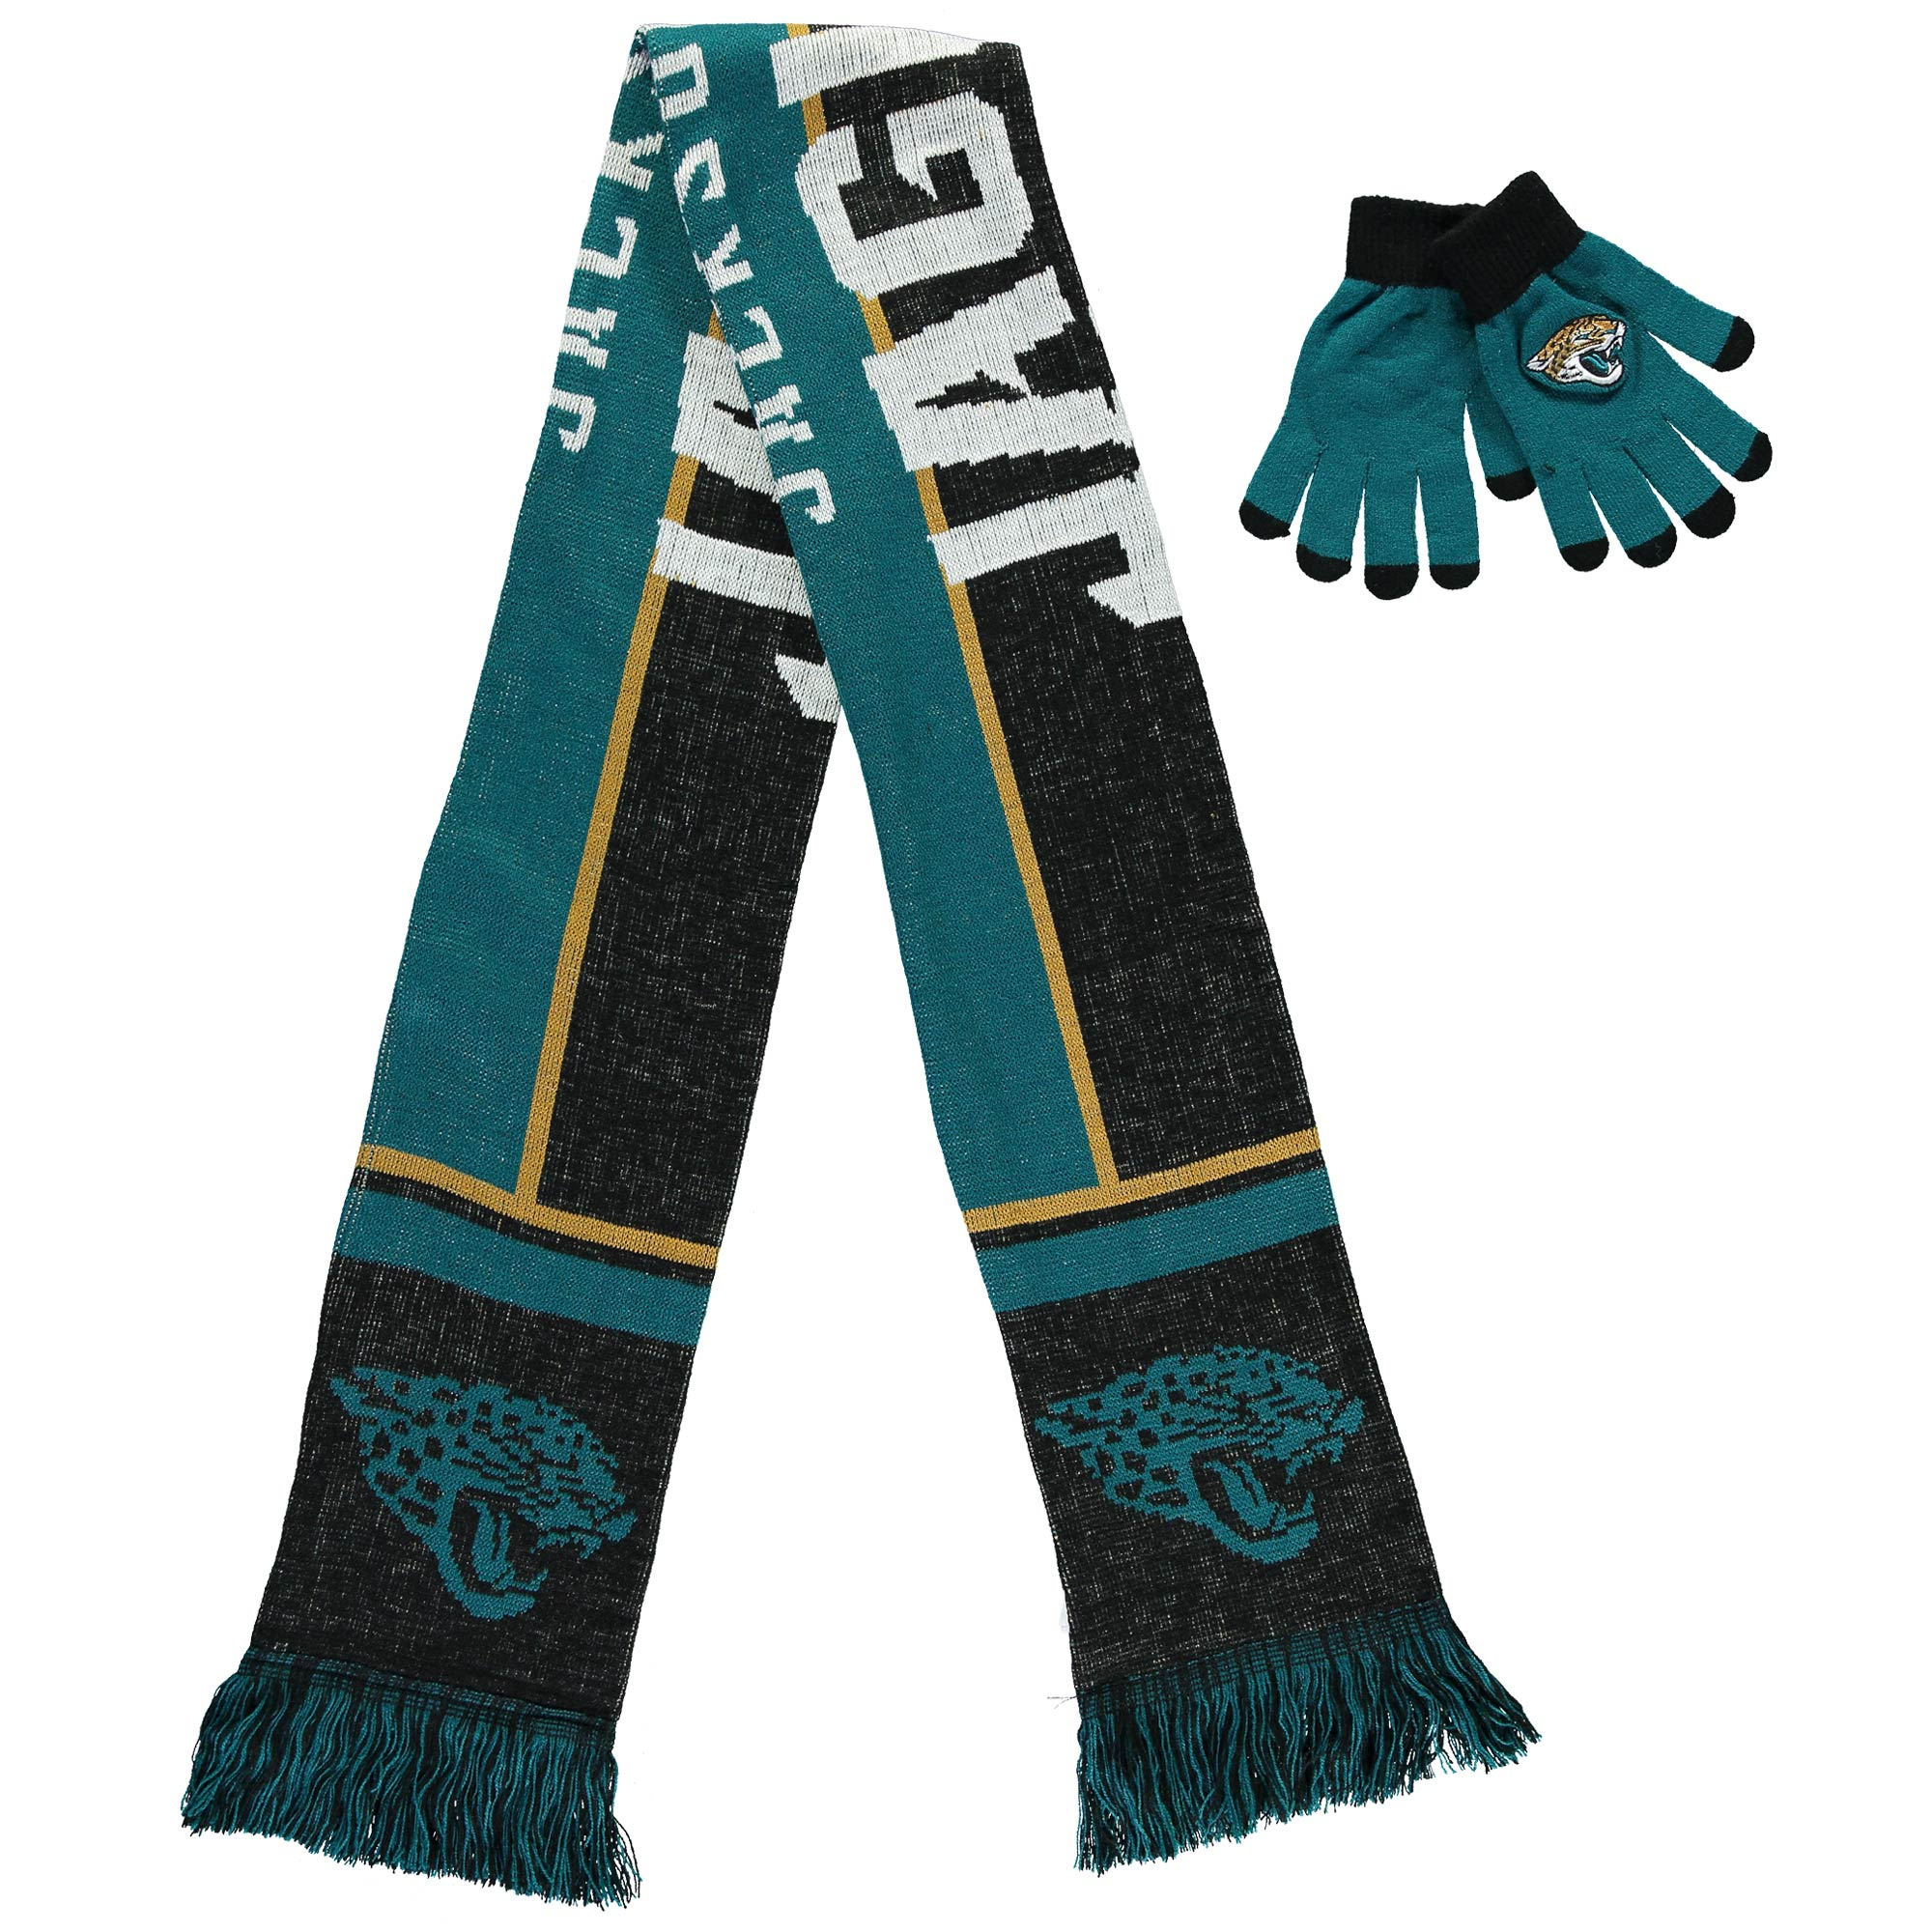 Jacksonville Jaguars Gloves and Scarf Set